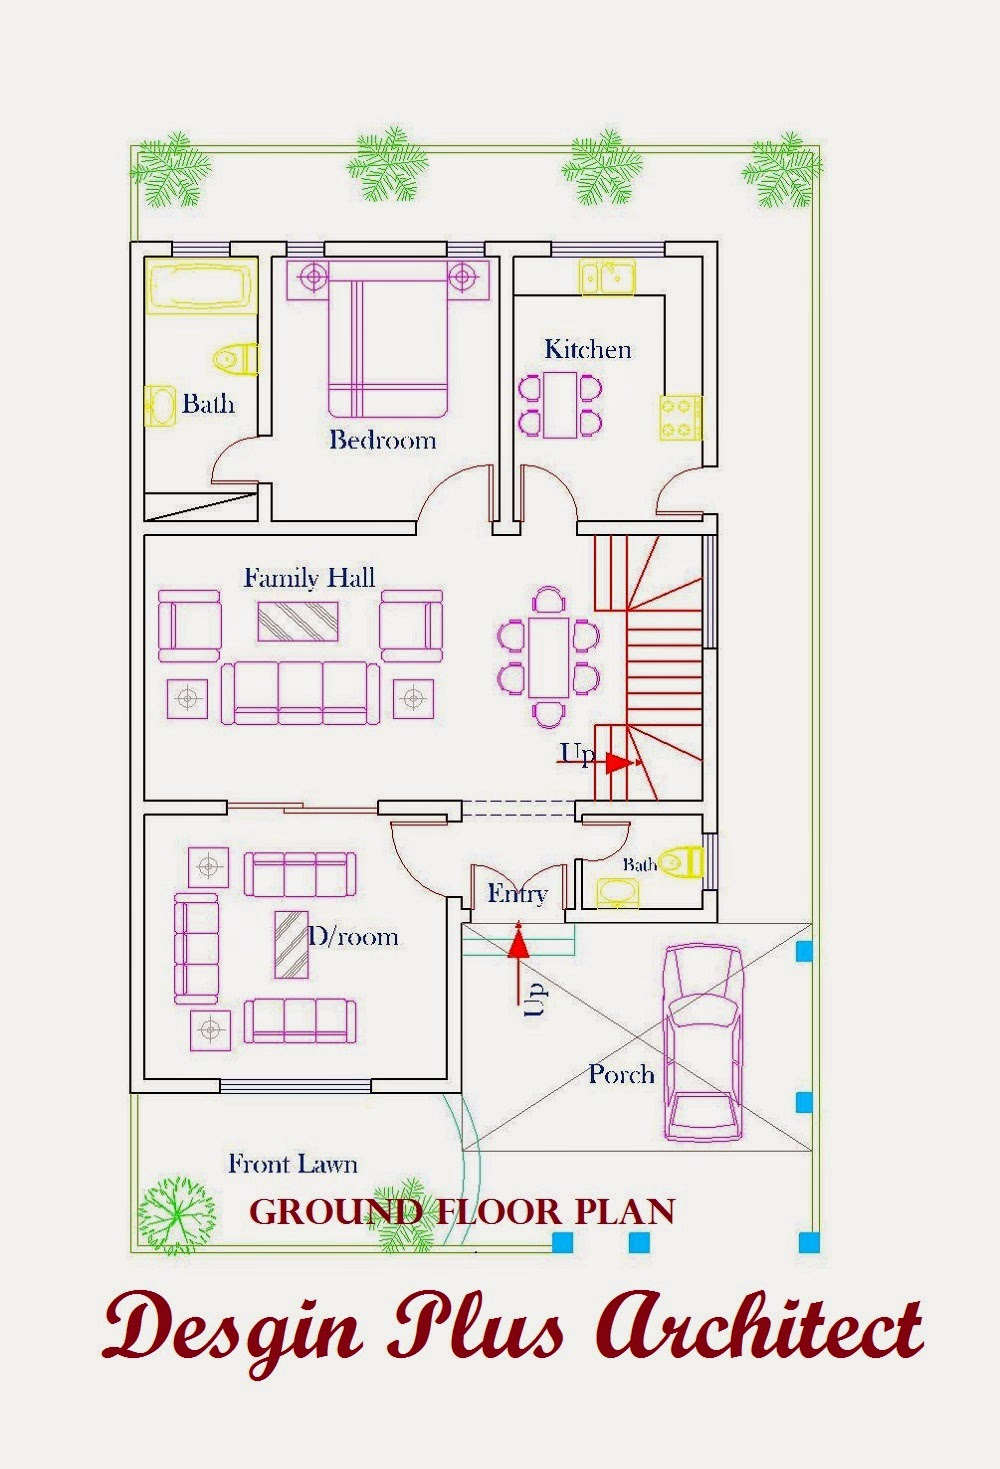 Home plans in pakistan home decor architect designer for Layout design for house